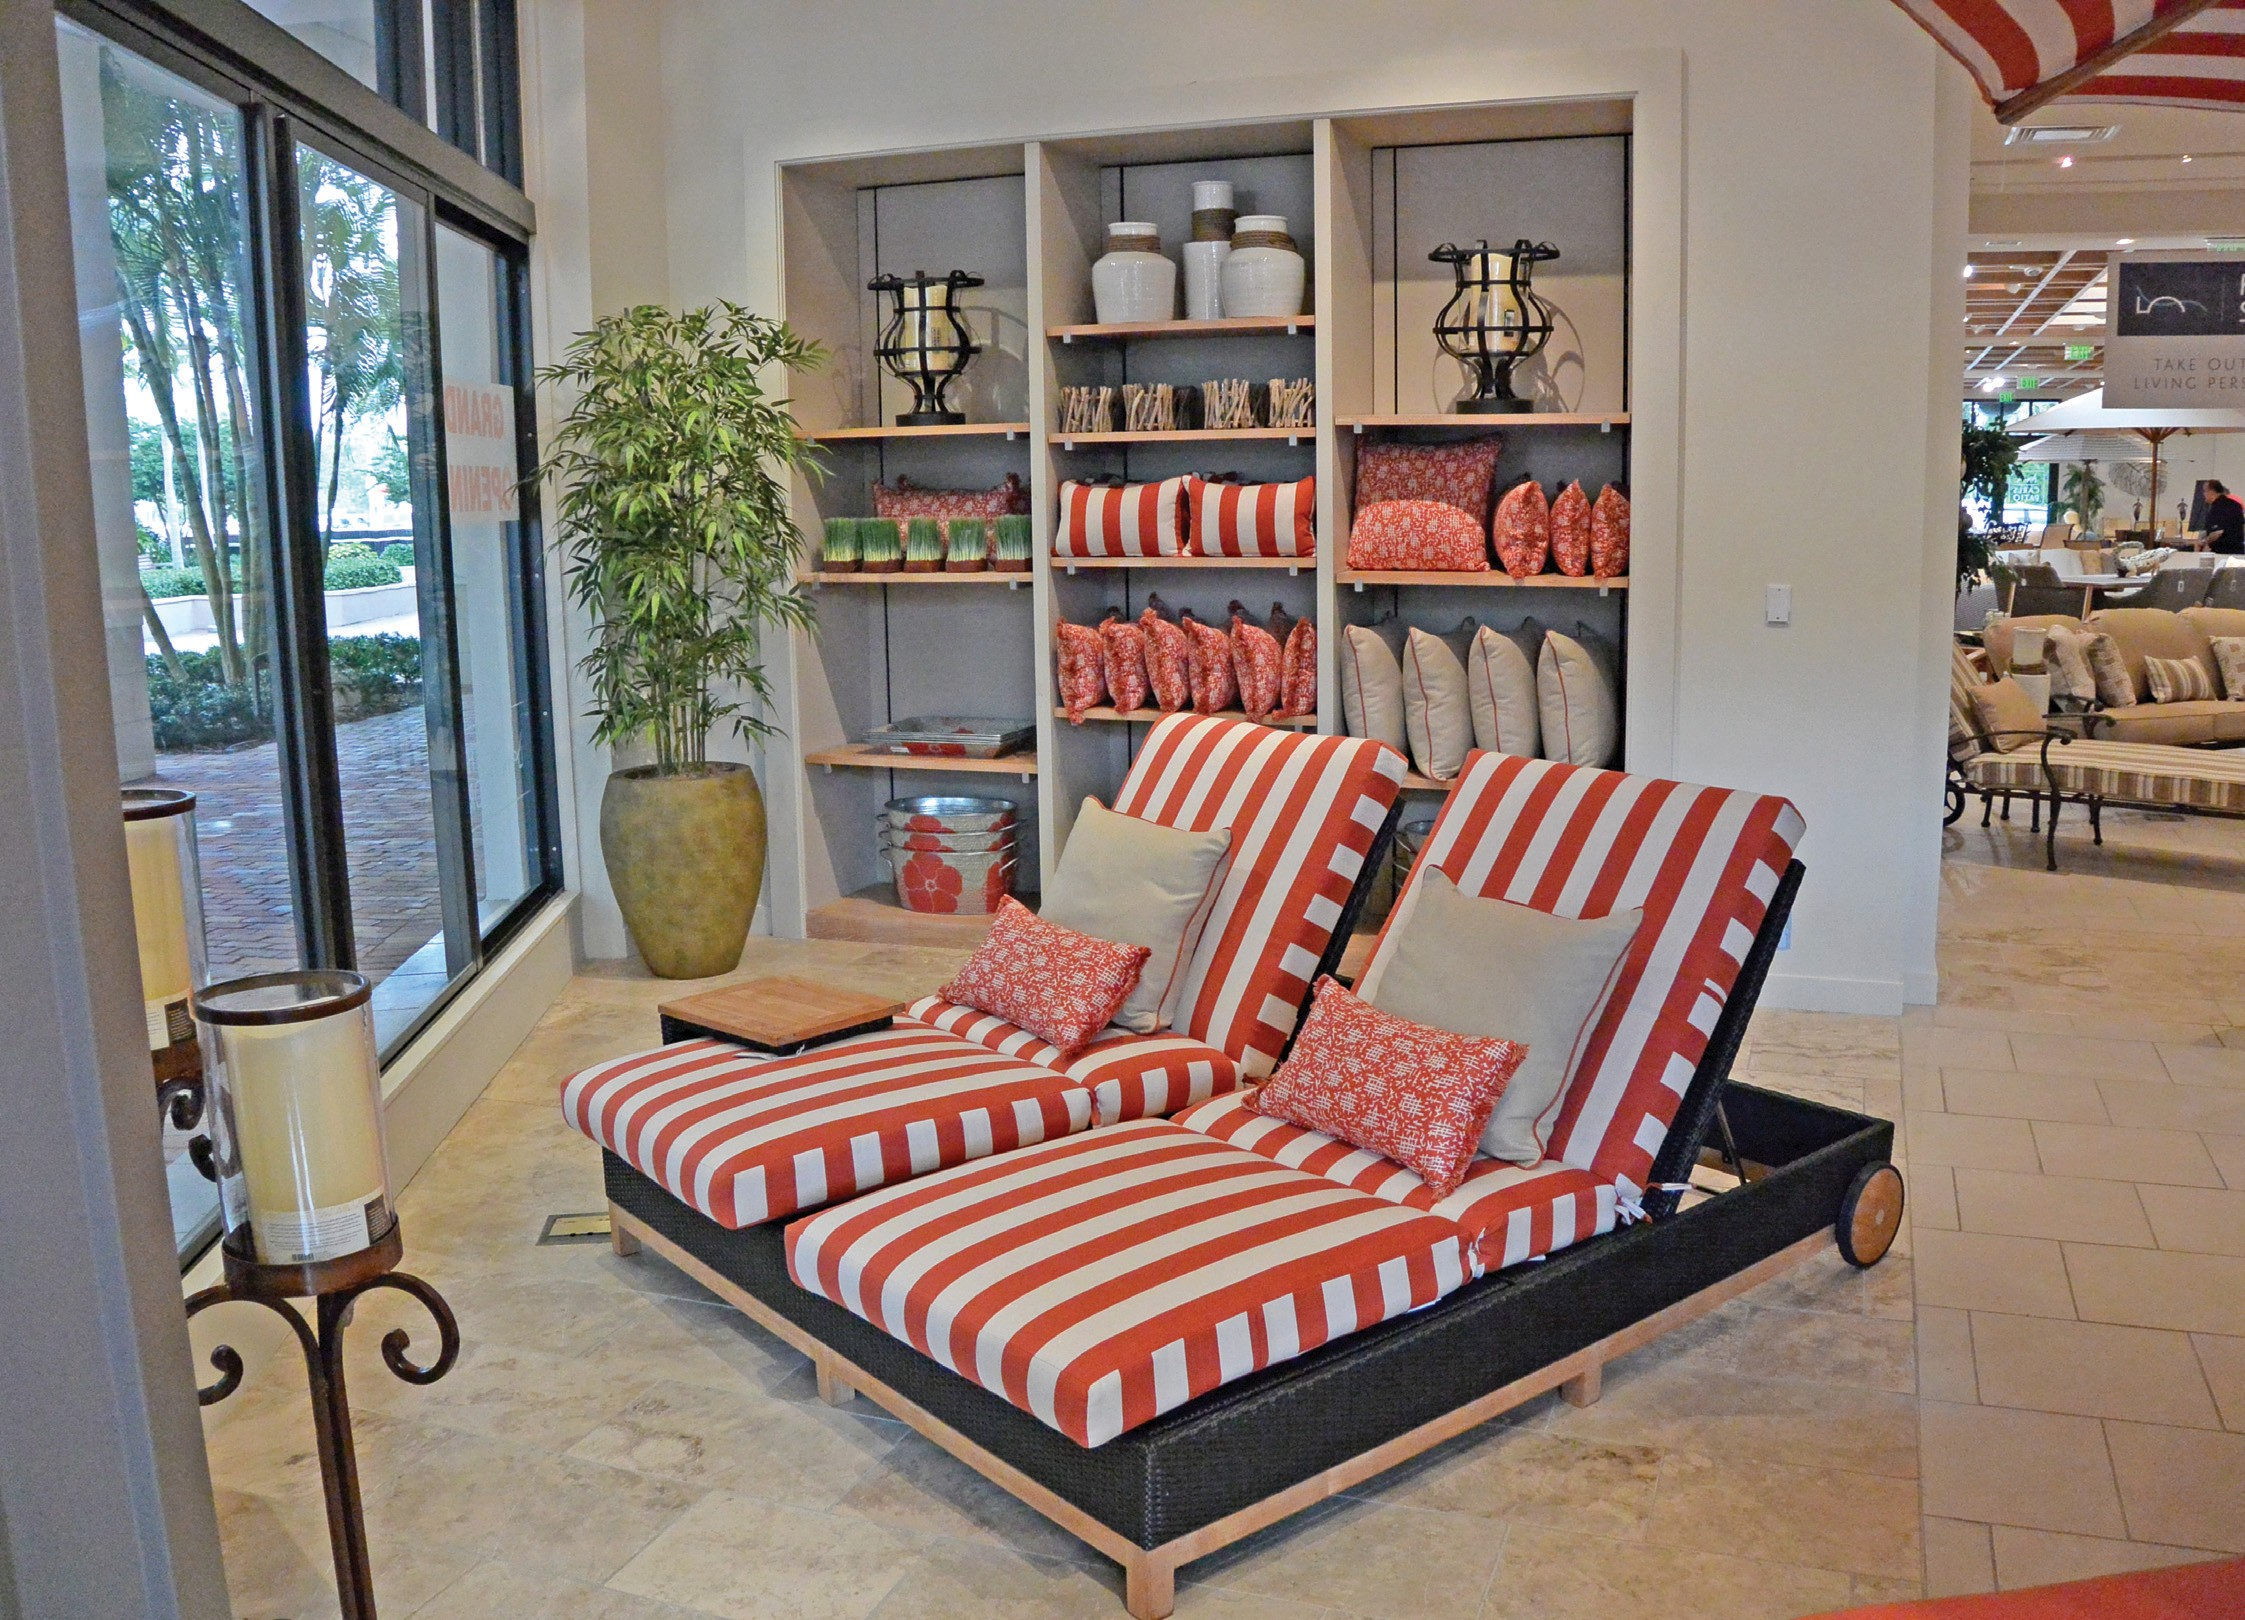 Peachy Carls Patio Opens New Store In Downtown At The Gardens Download Free Architecture Designs Ponolprimenicaraguapropertycom